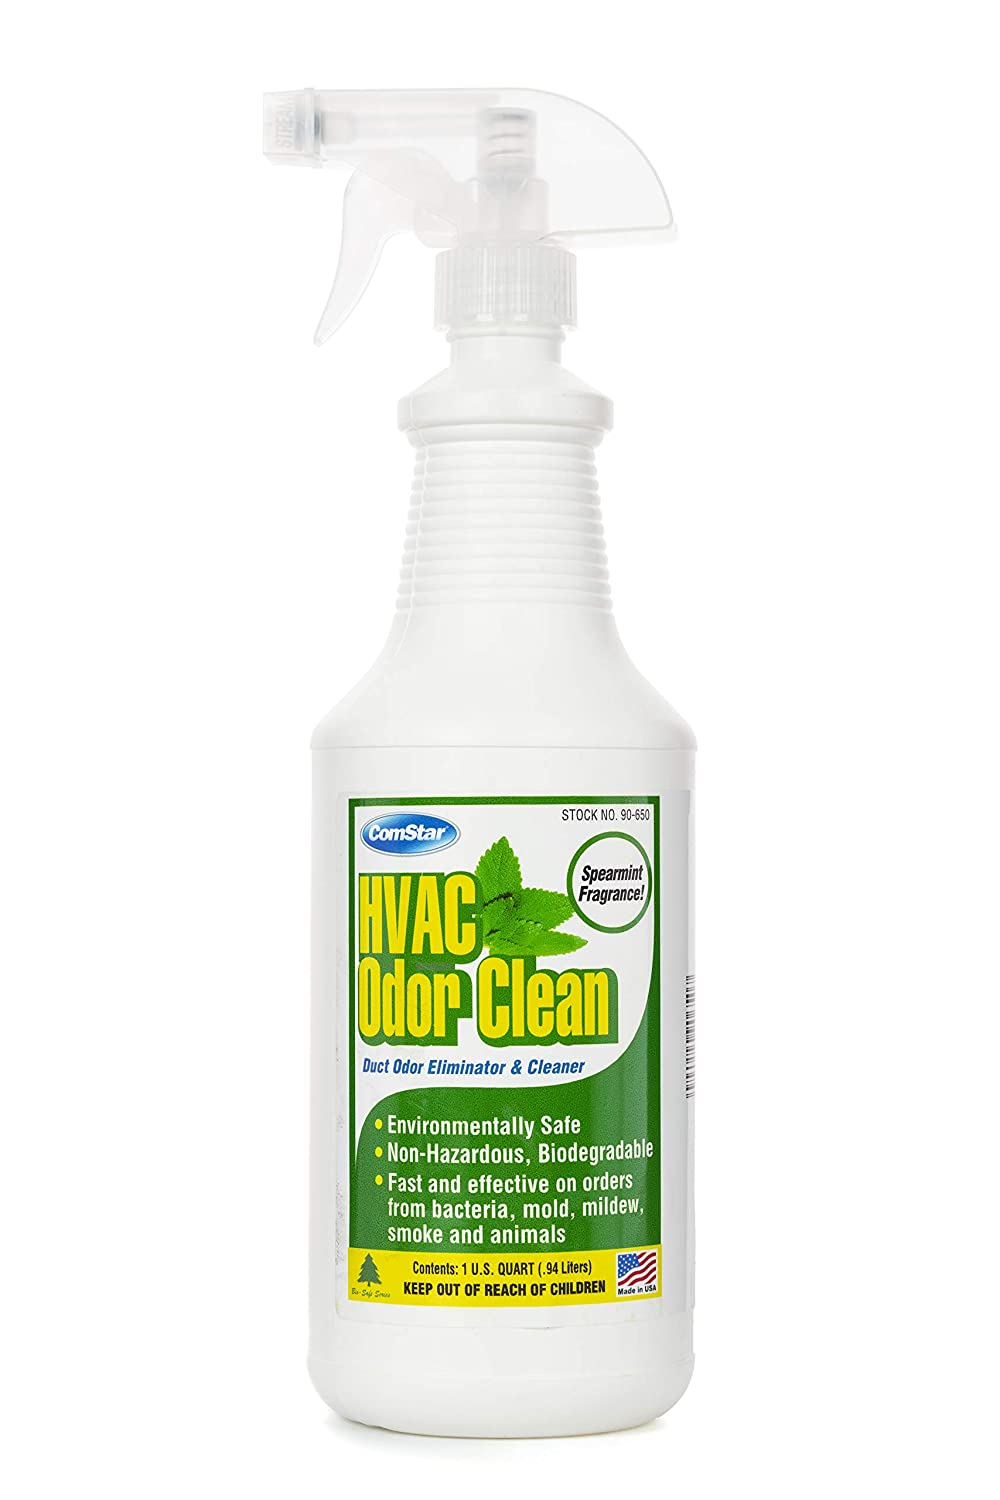 Comstar 90-650 HVAC Super beauty product restock quality top Odor Clean 32 Cleaner OFFicial site Eliminator fl